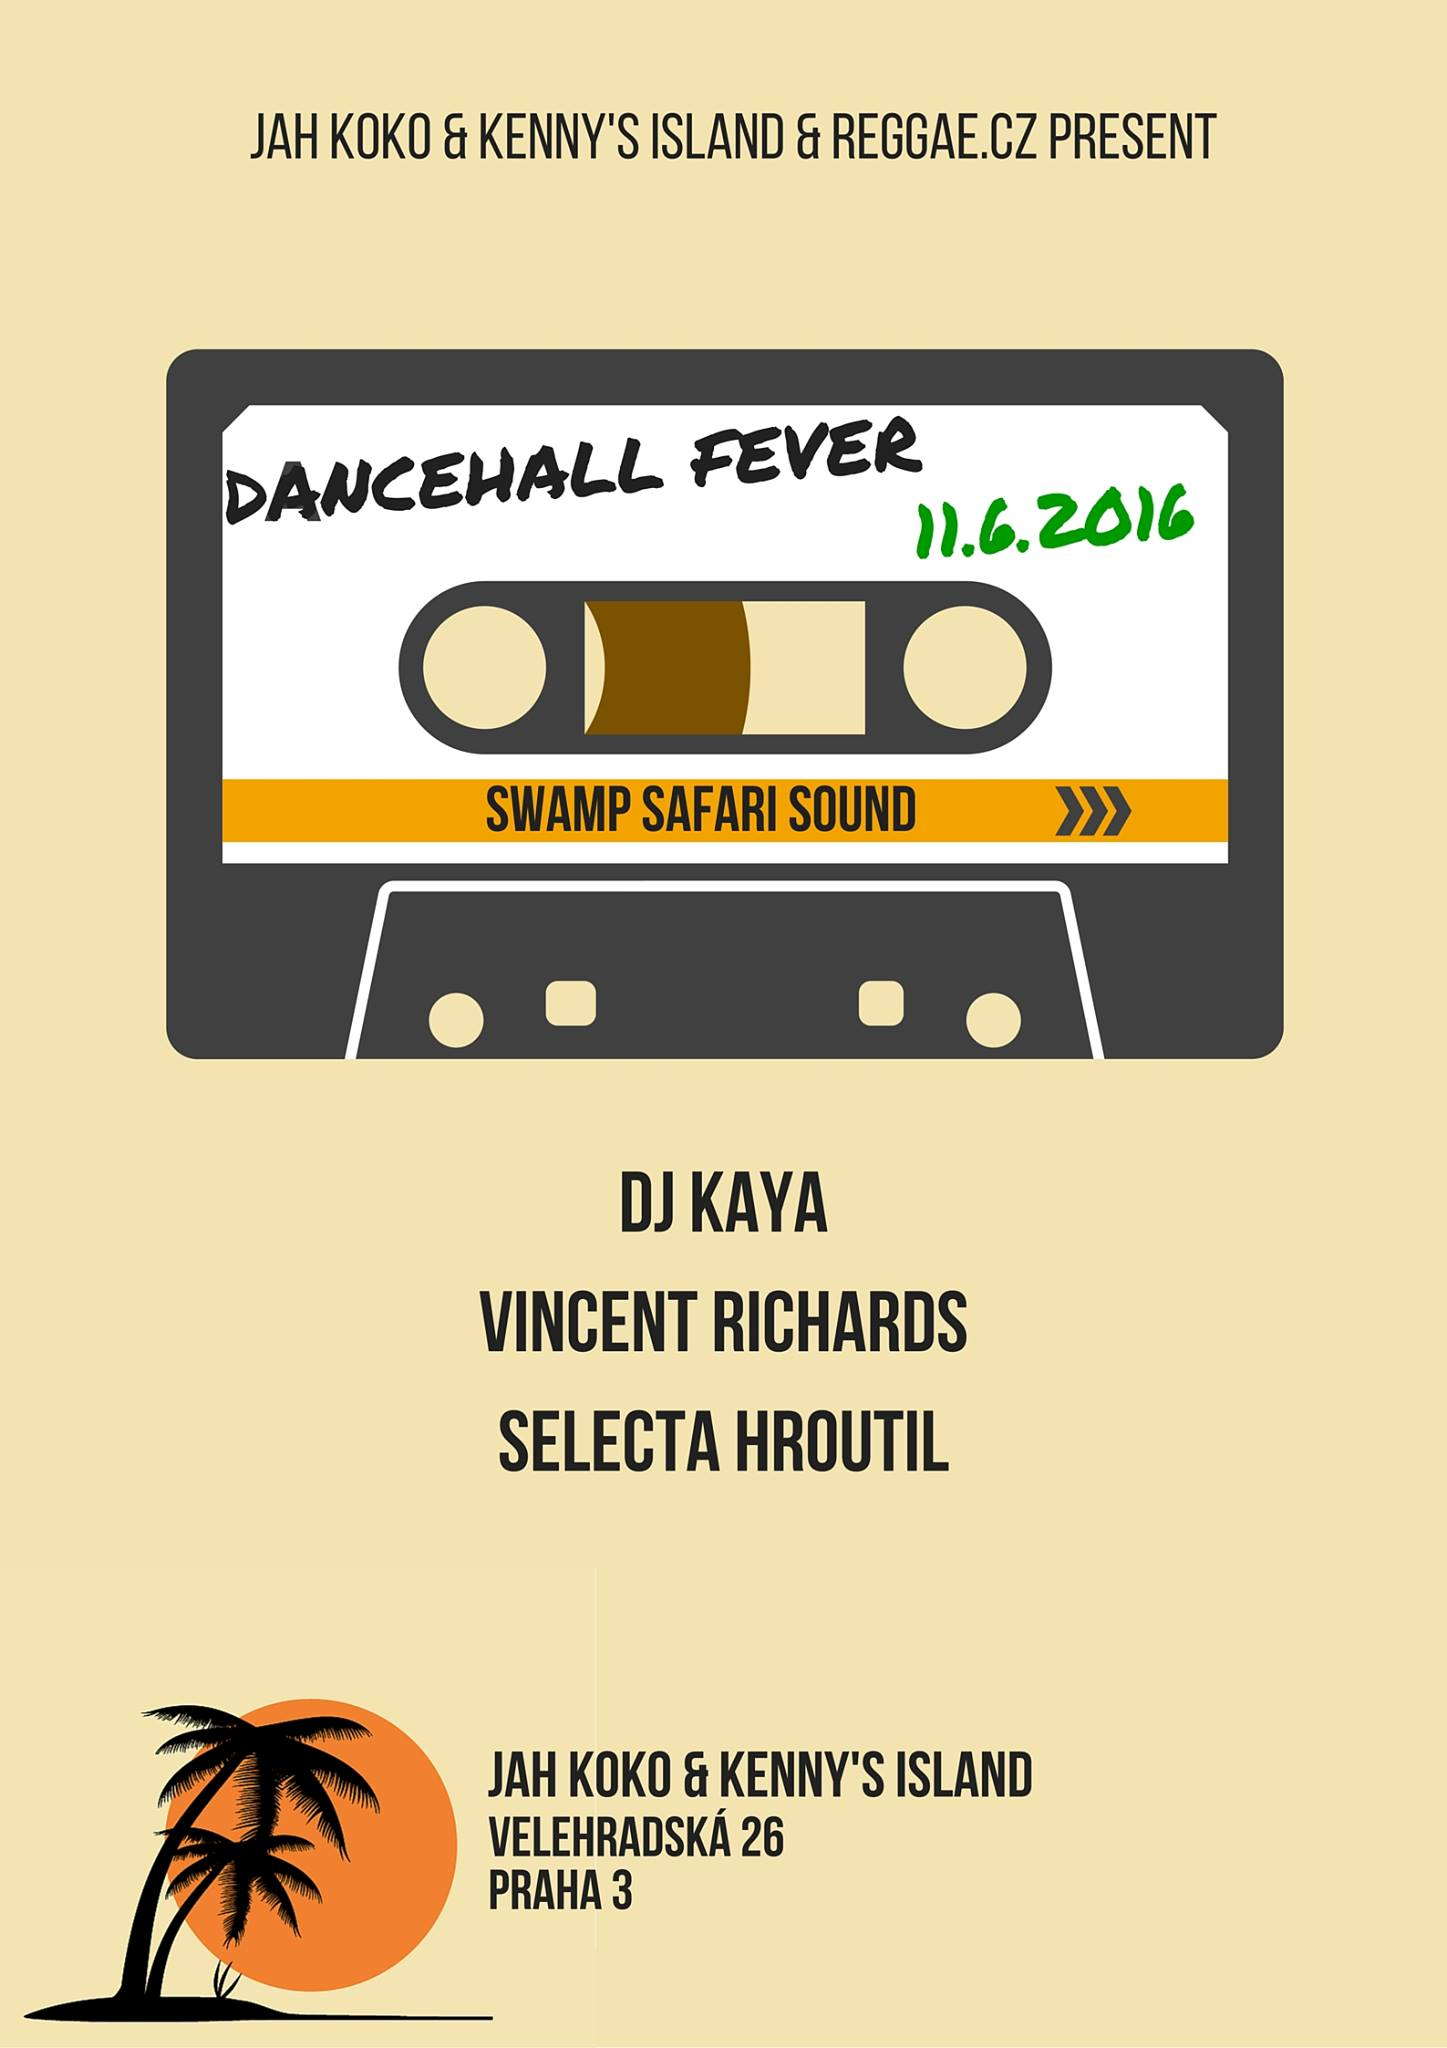 DANCEHALL FEVER w/ SWAMP SAFARI SOUND